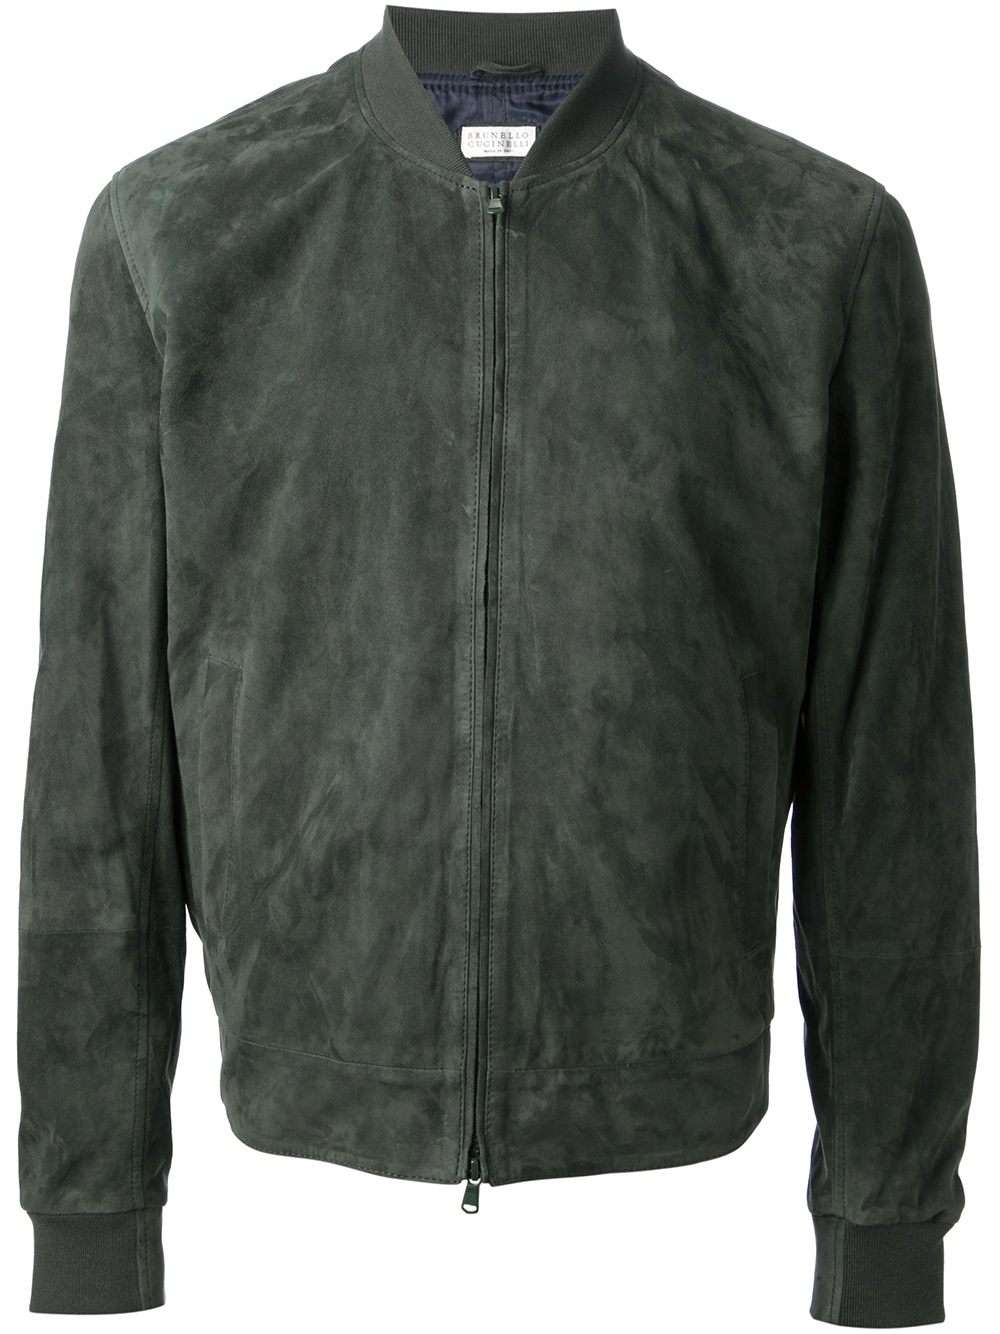 Suede Jacket Outfits For Men 20 Ways To Wear A Suede Jacket: Brunello Cucinelli Suede Jacket In Green For Men